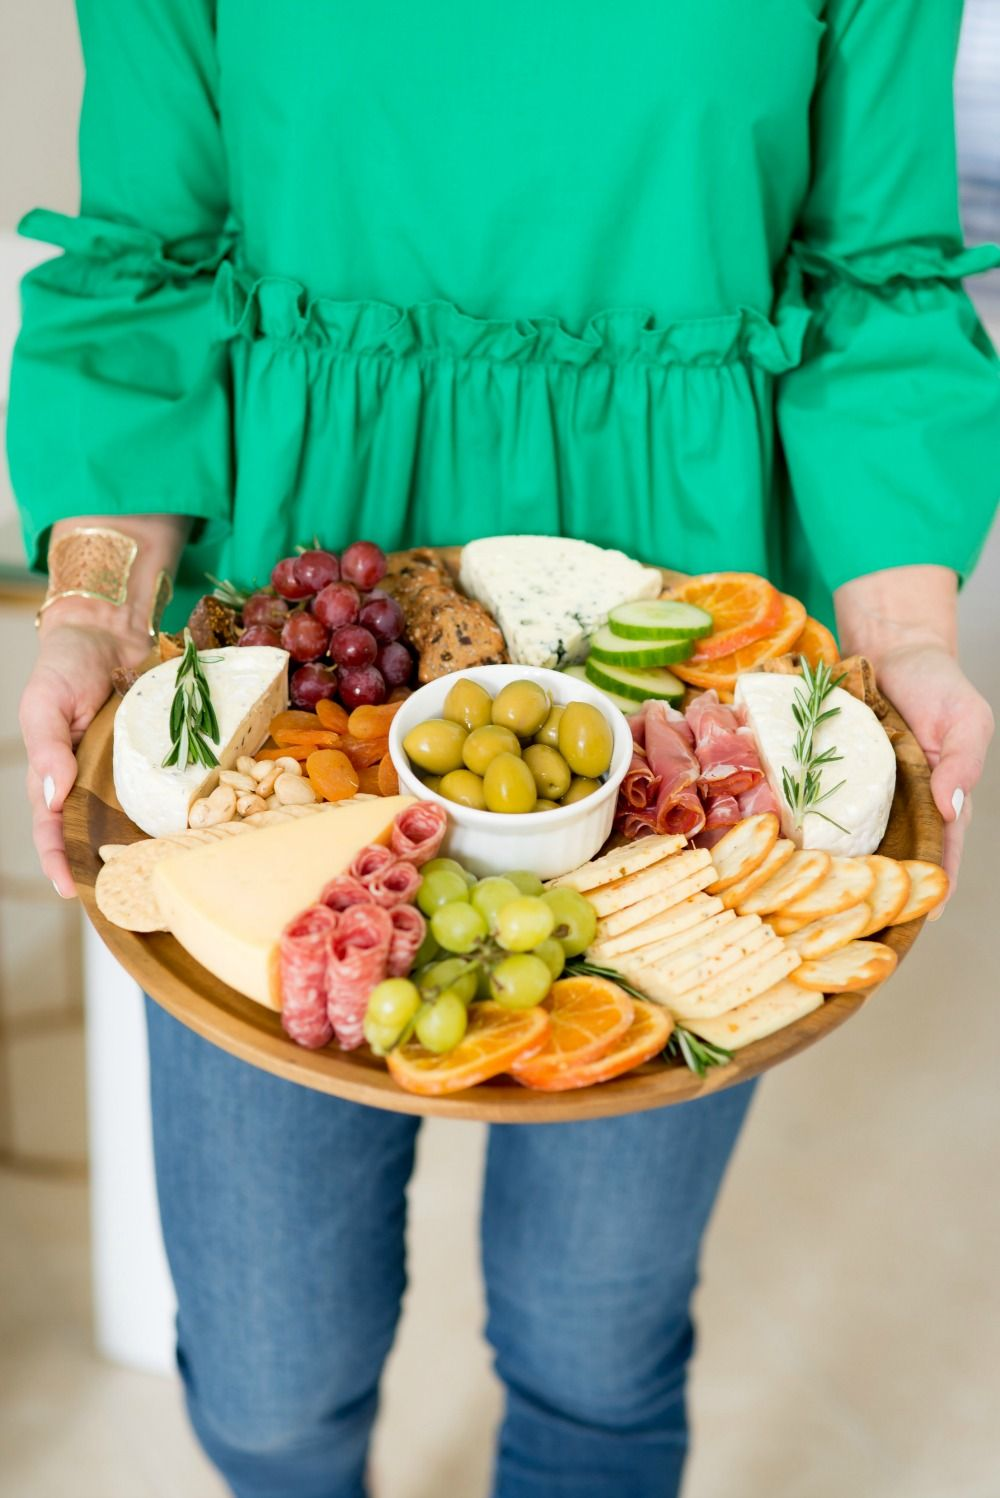 Best Cheese Board Ideas | Life | The Modern Savvy - the blog